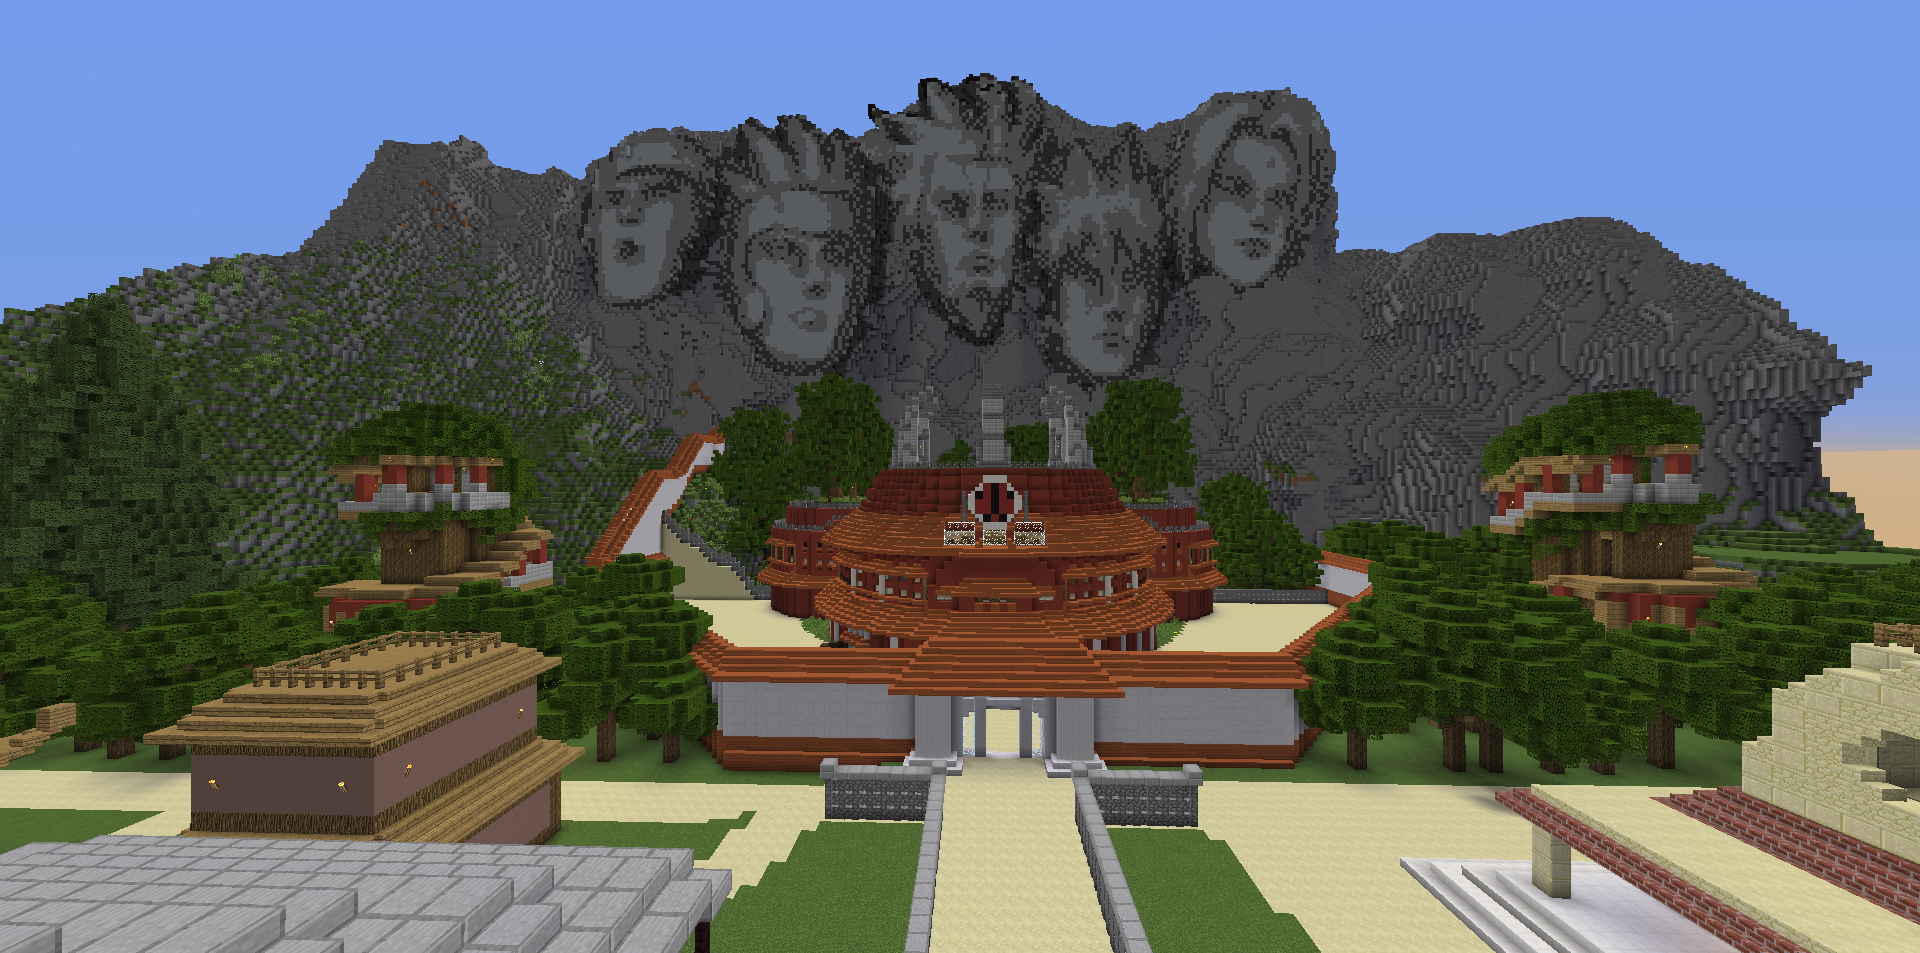 Real naruto universe vs our map overview ignore the black spots official naruto rpg server is looking for builders we are a professional minecraft server which is up since january we have manag gumiabroncs Gallery